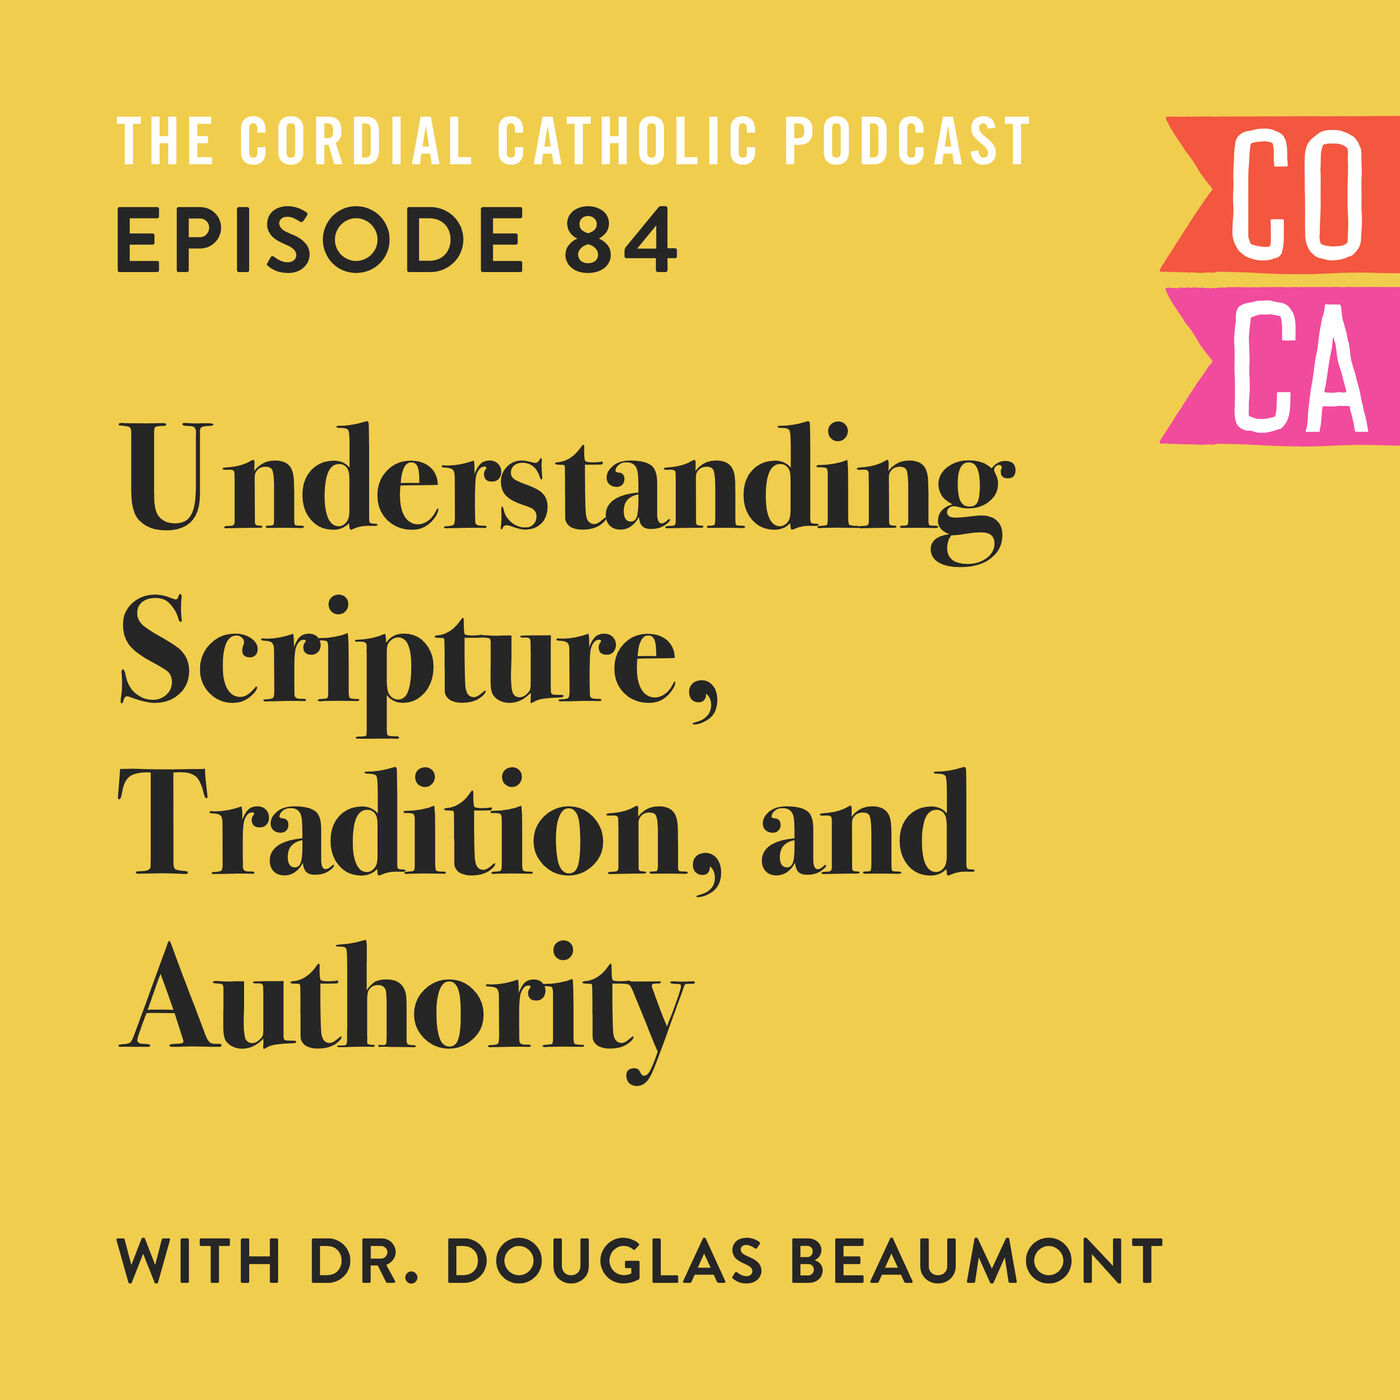 084: Understanding Scripture, Tradition, and Authority (w/ Dr. Doug Beaumont)